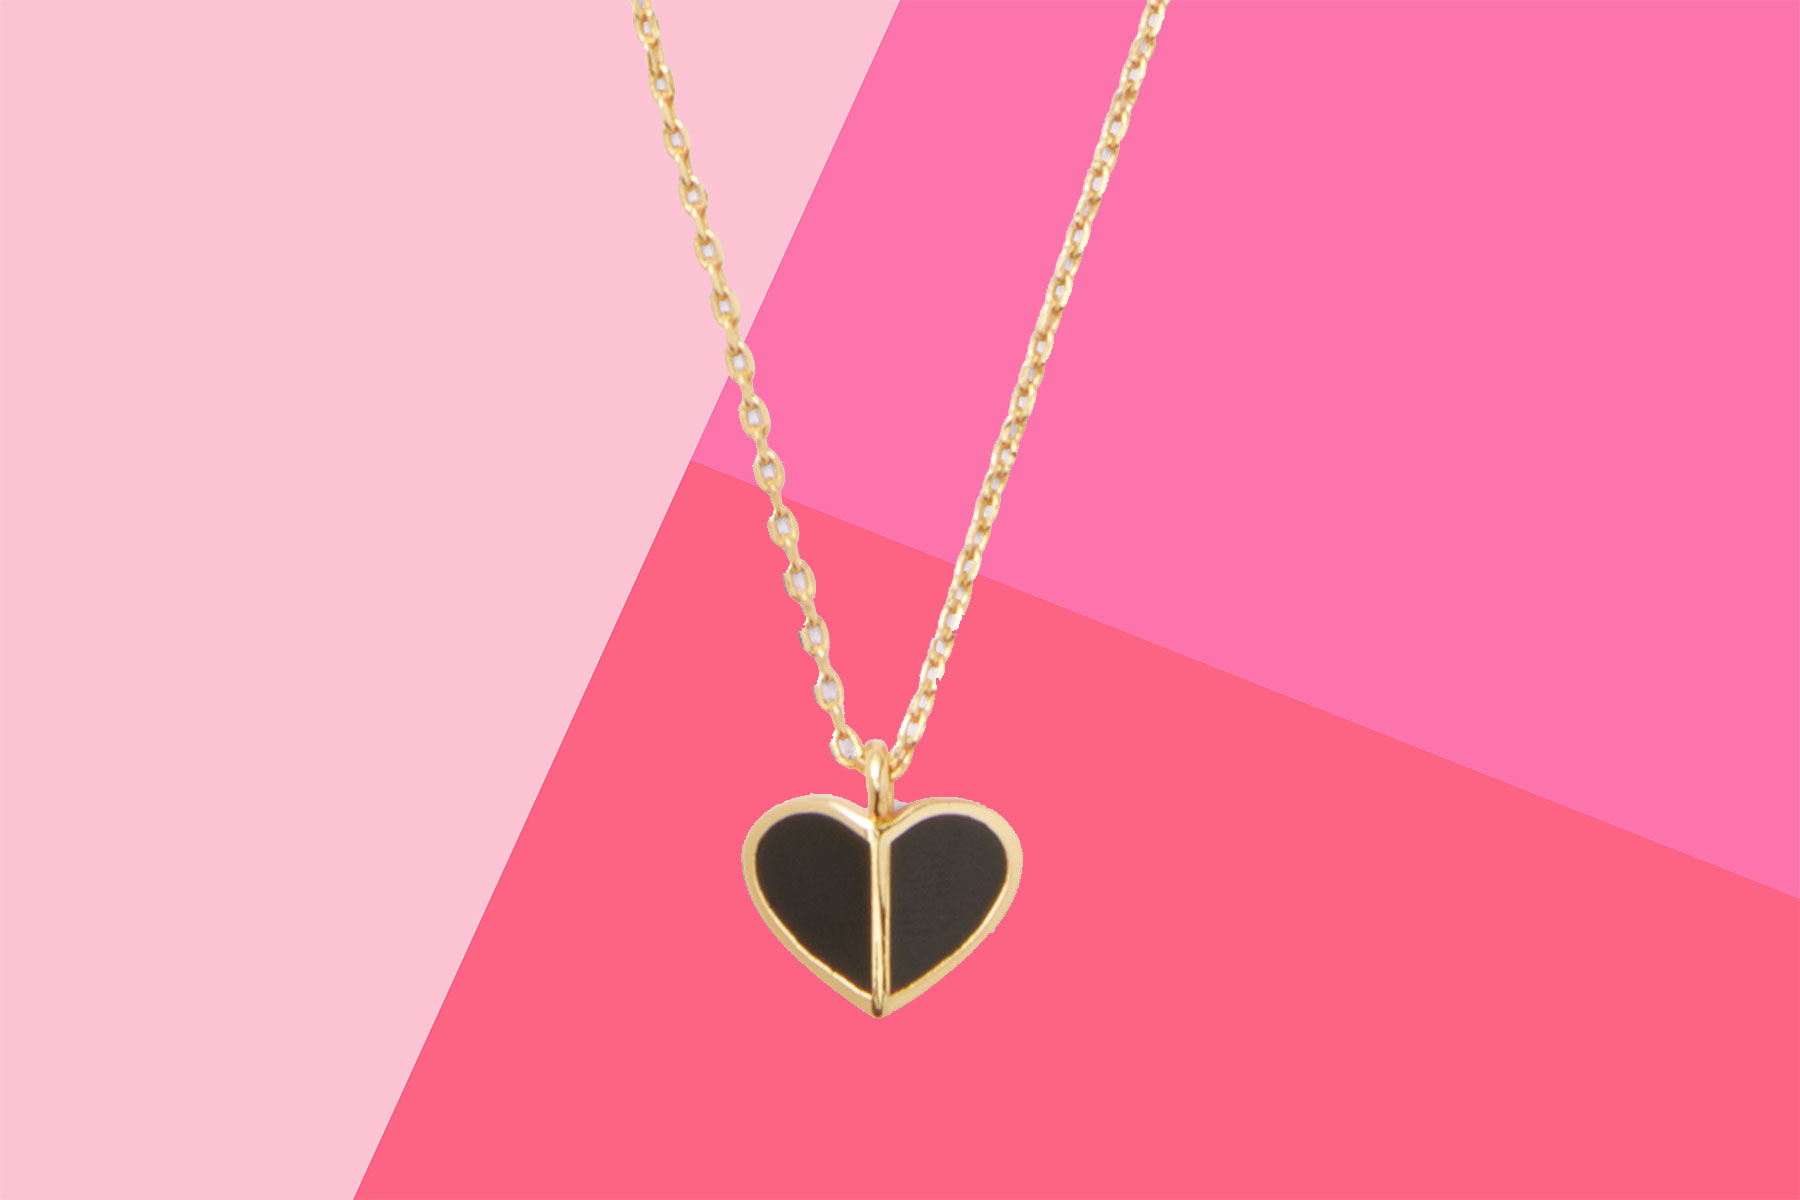 Kate Spade's Gorgeous Jewelry Is 40% Off Right Now—Here's How to Score the Deal